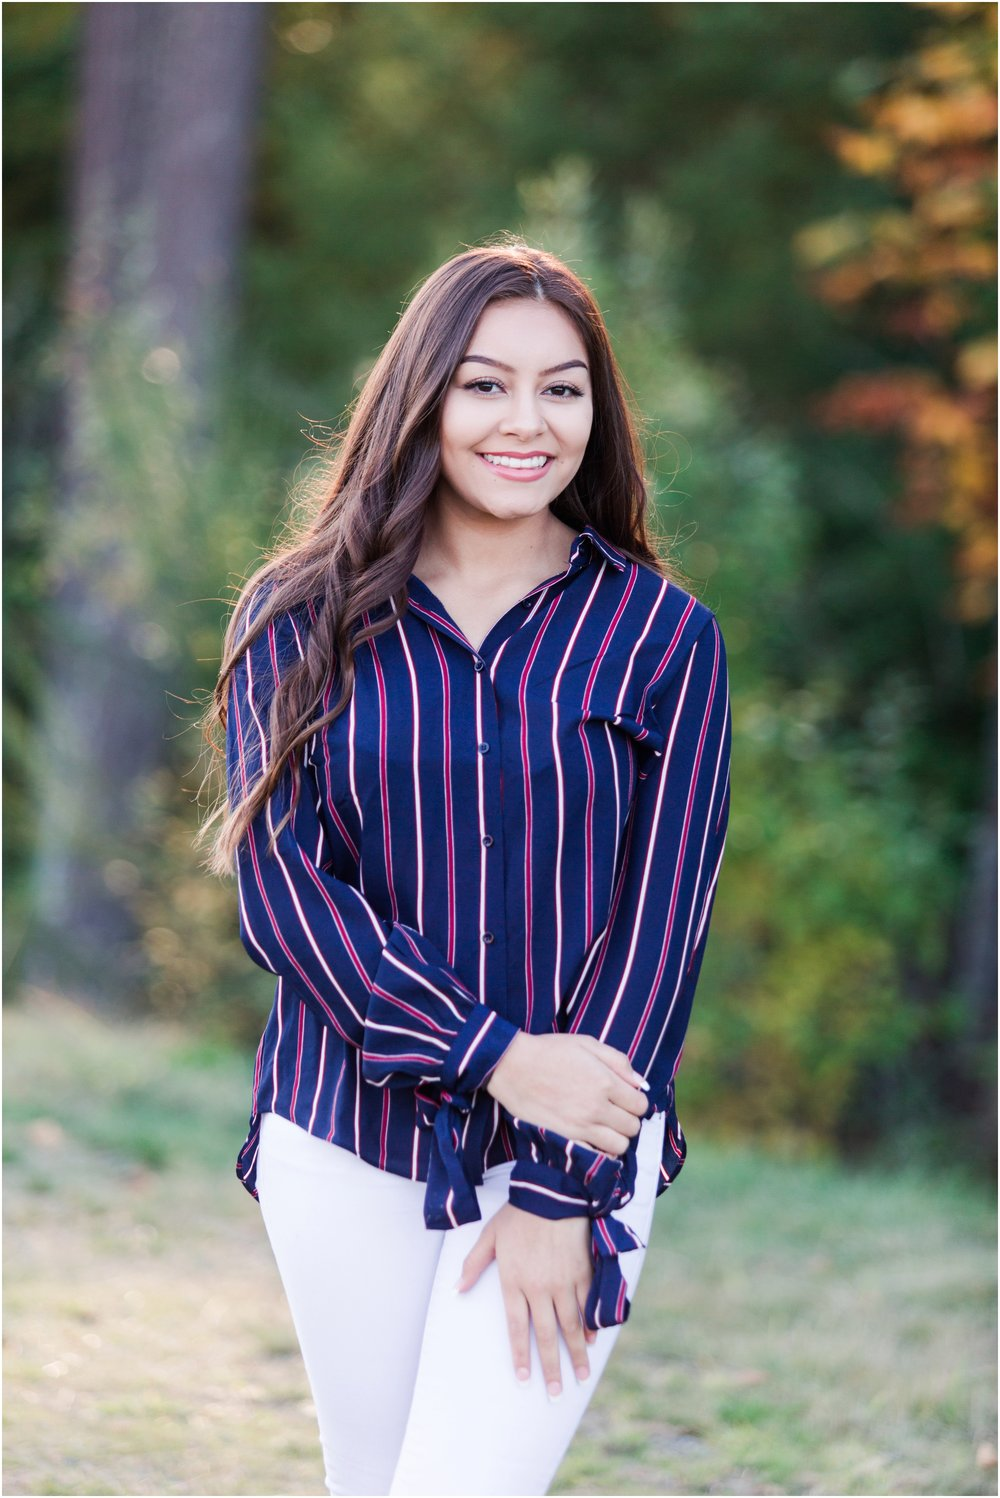 High School Senior portriats by Briana Calderon Photography based in the Greater Seattle & Tacoma, WA_0943.jpg